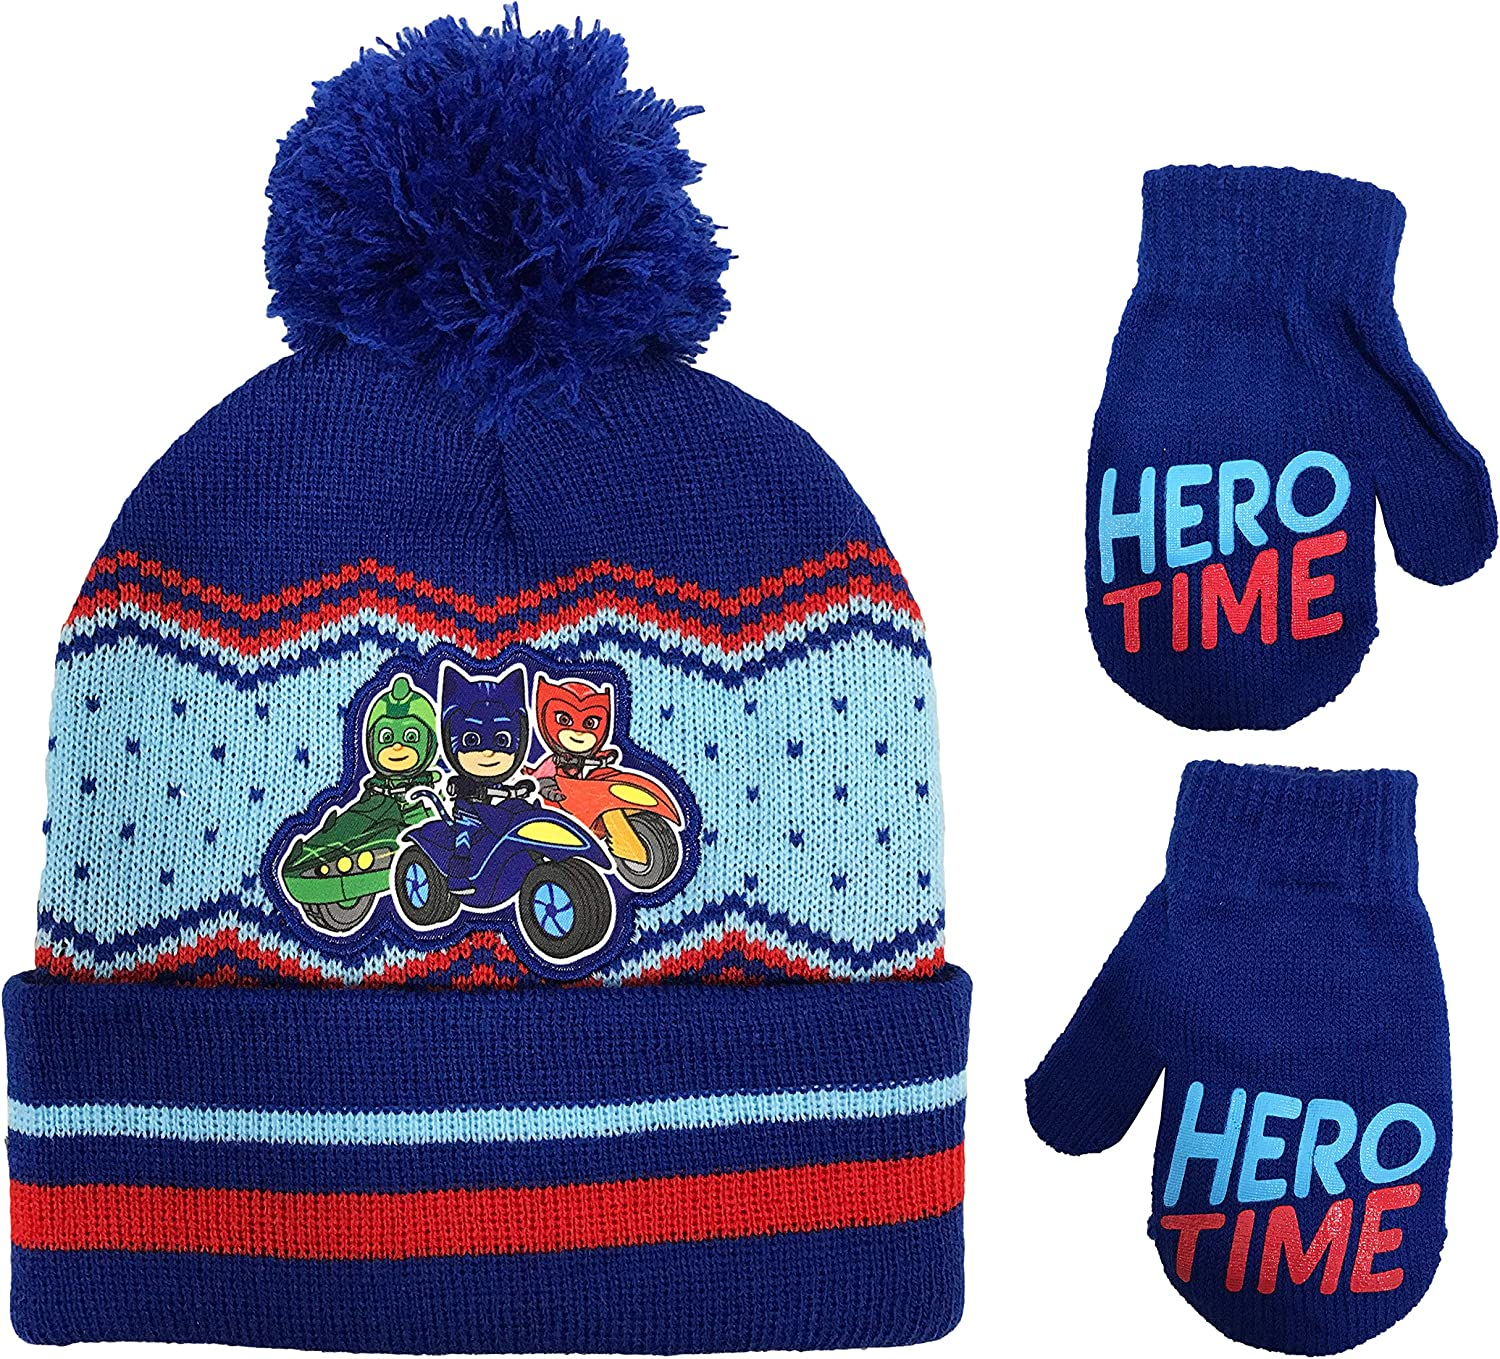 PJ Masks Toddler Boys Beanie Winter Hat and Mittens Cold Weather Set, Age 2-4